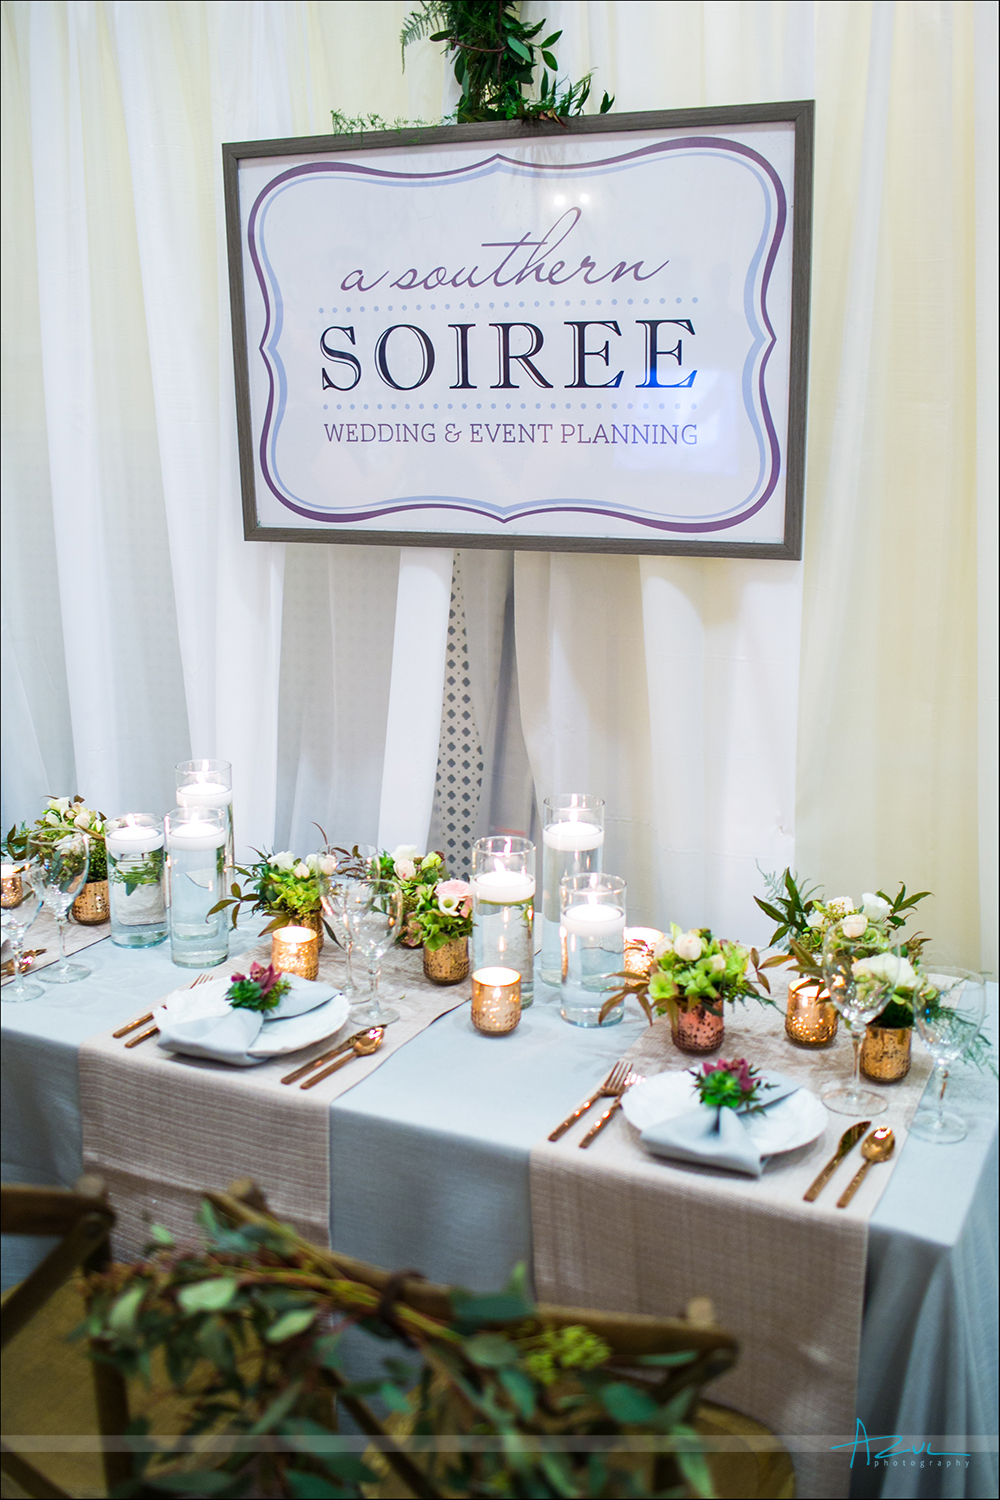 Best darn wedding planers in North Carolina is A Southern Soiree